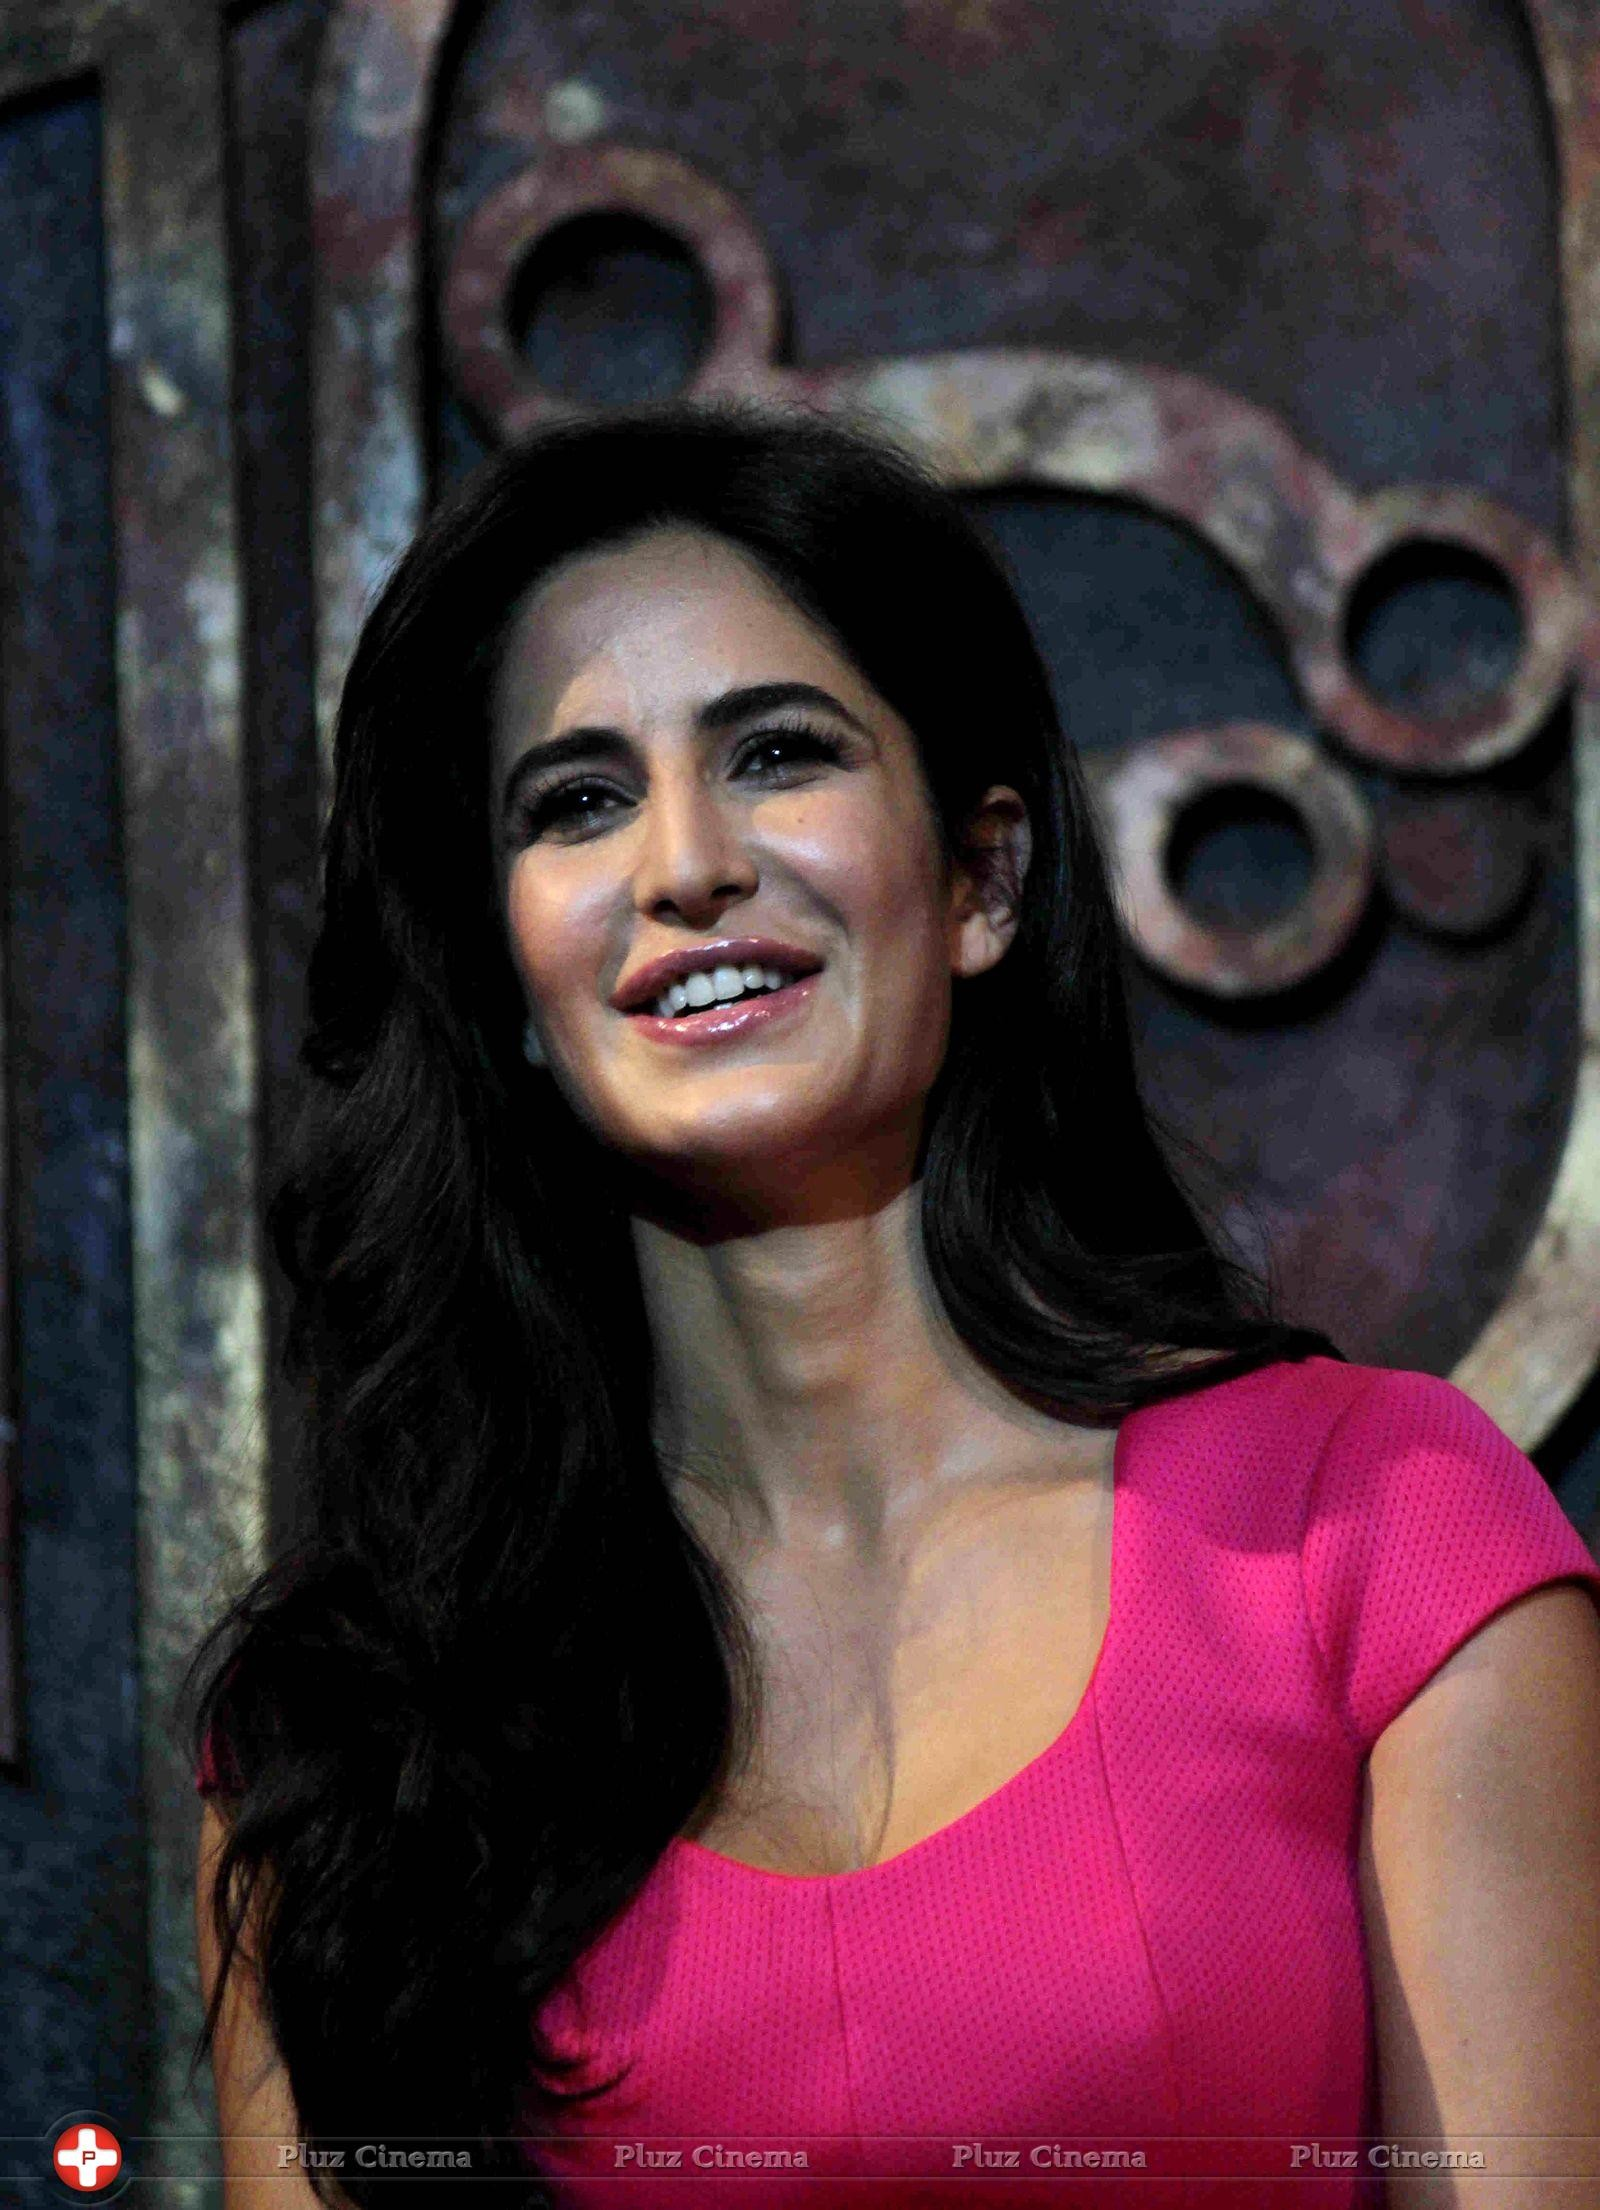 katrina kaif wallpaper hd (77+ images)